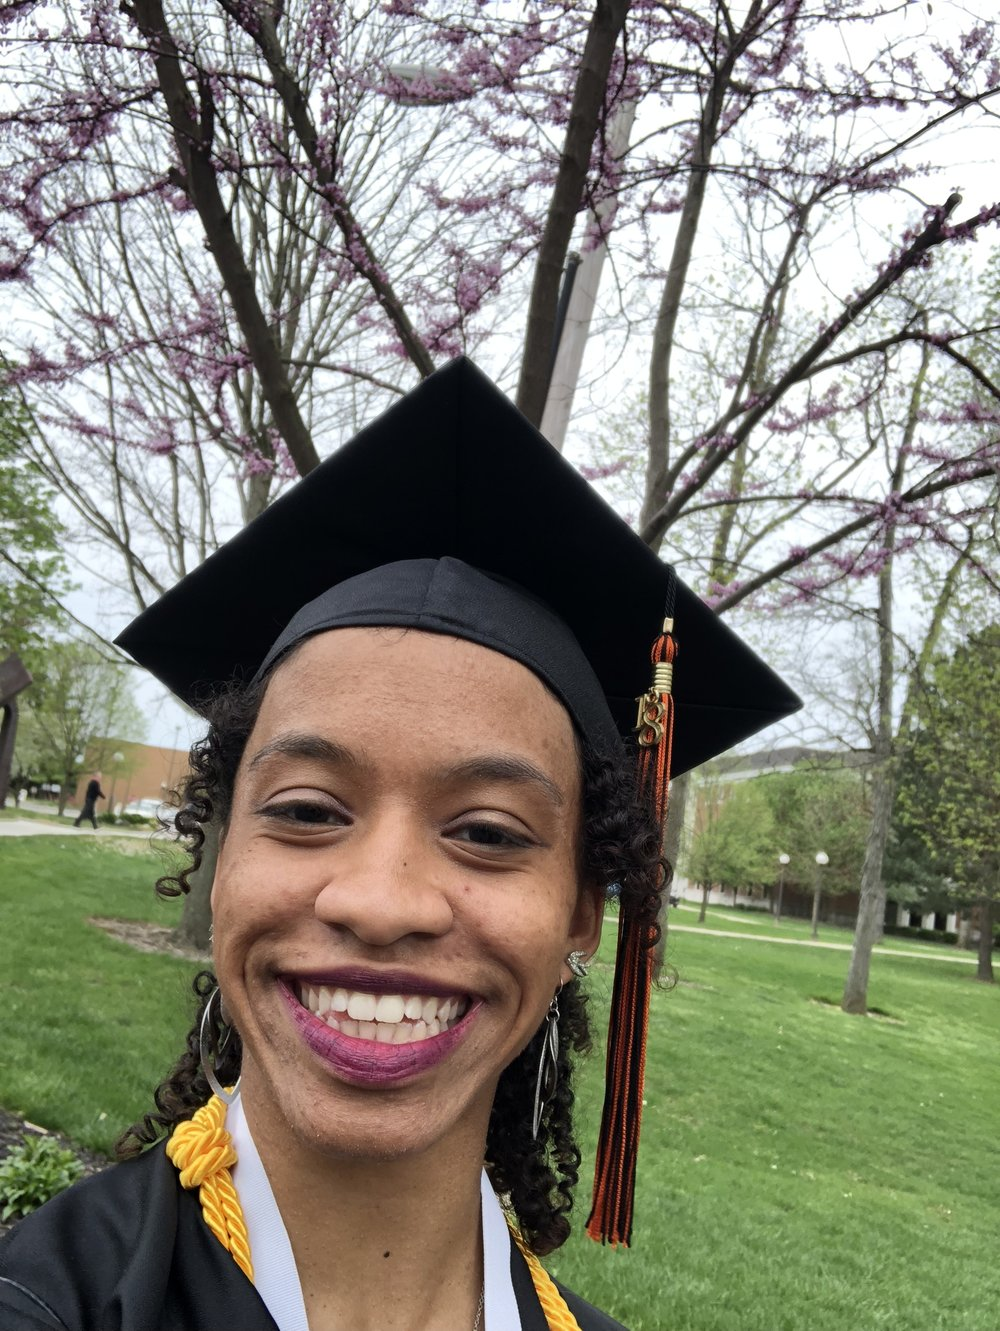 - On Saturday, May 5, Faith graduated with the rest of her class from Anderson University. She was acknowledged for graduating from the Honors Program and for graduating cum laude. She received her Bachelors of Arts in Dance Business and Writing. Her final GPA is 3.817.